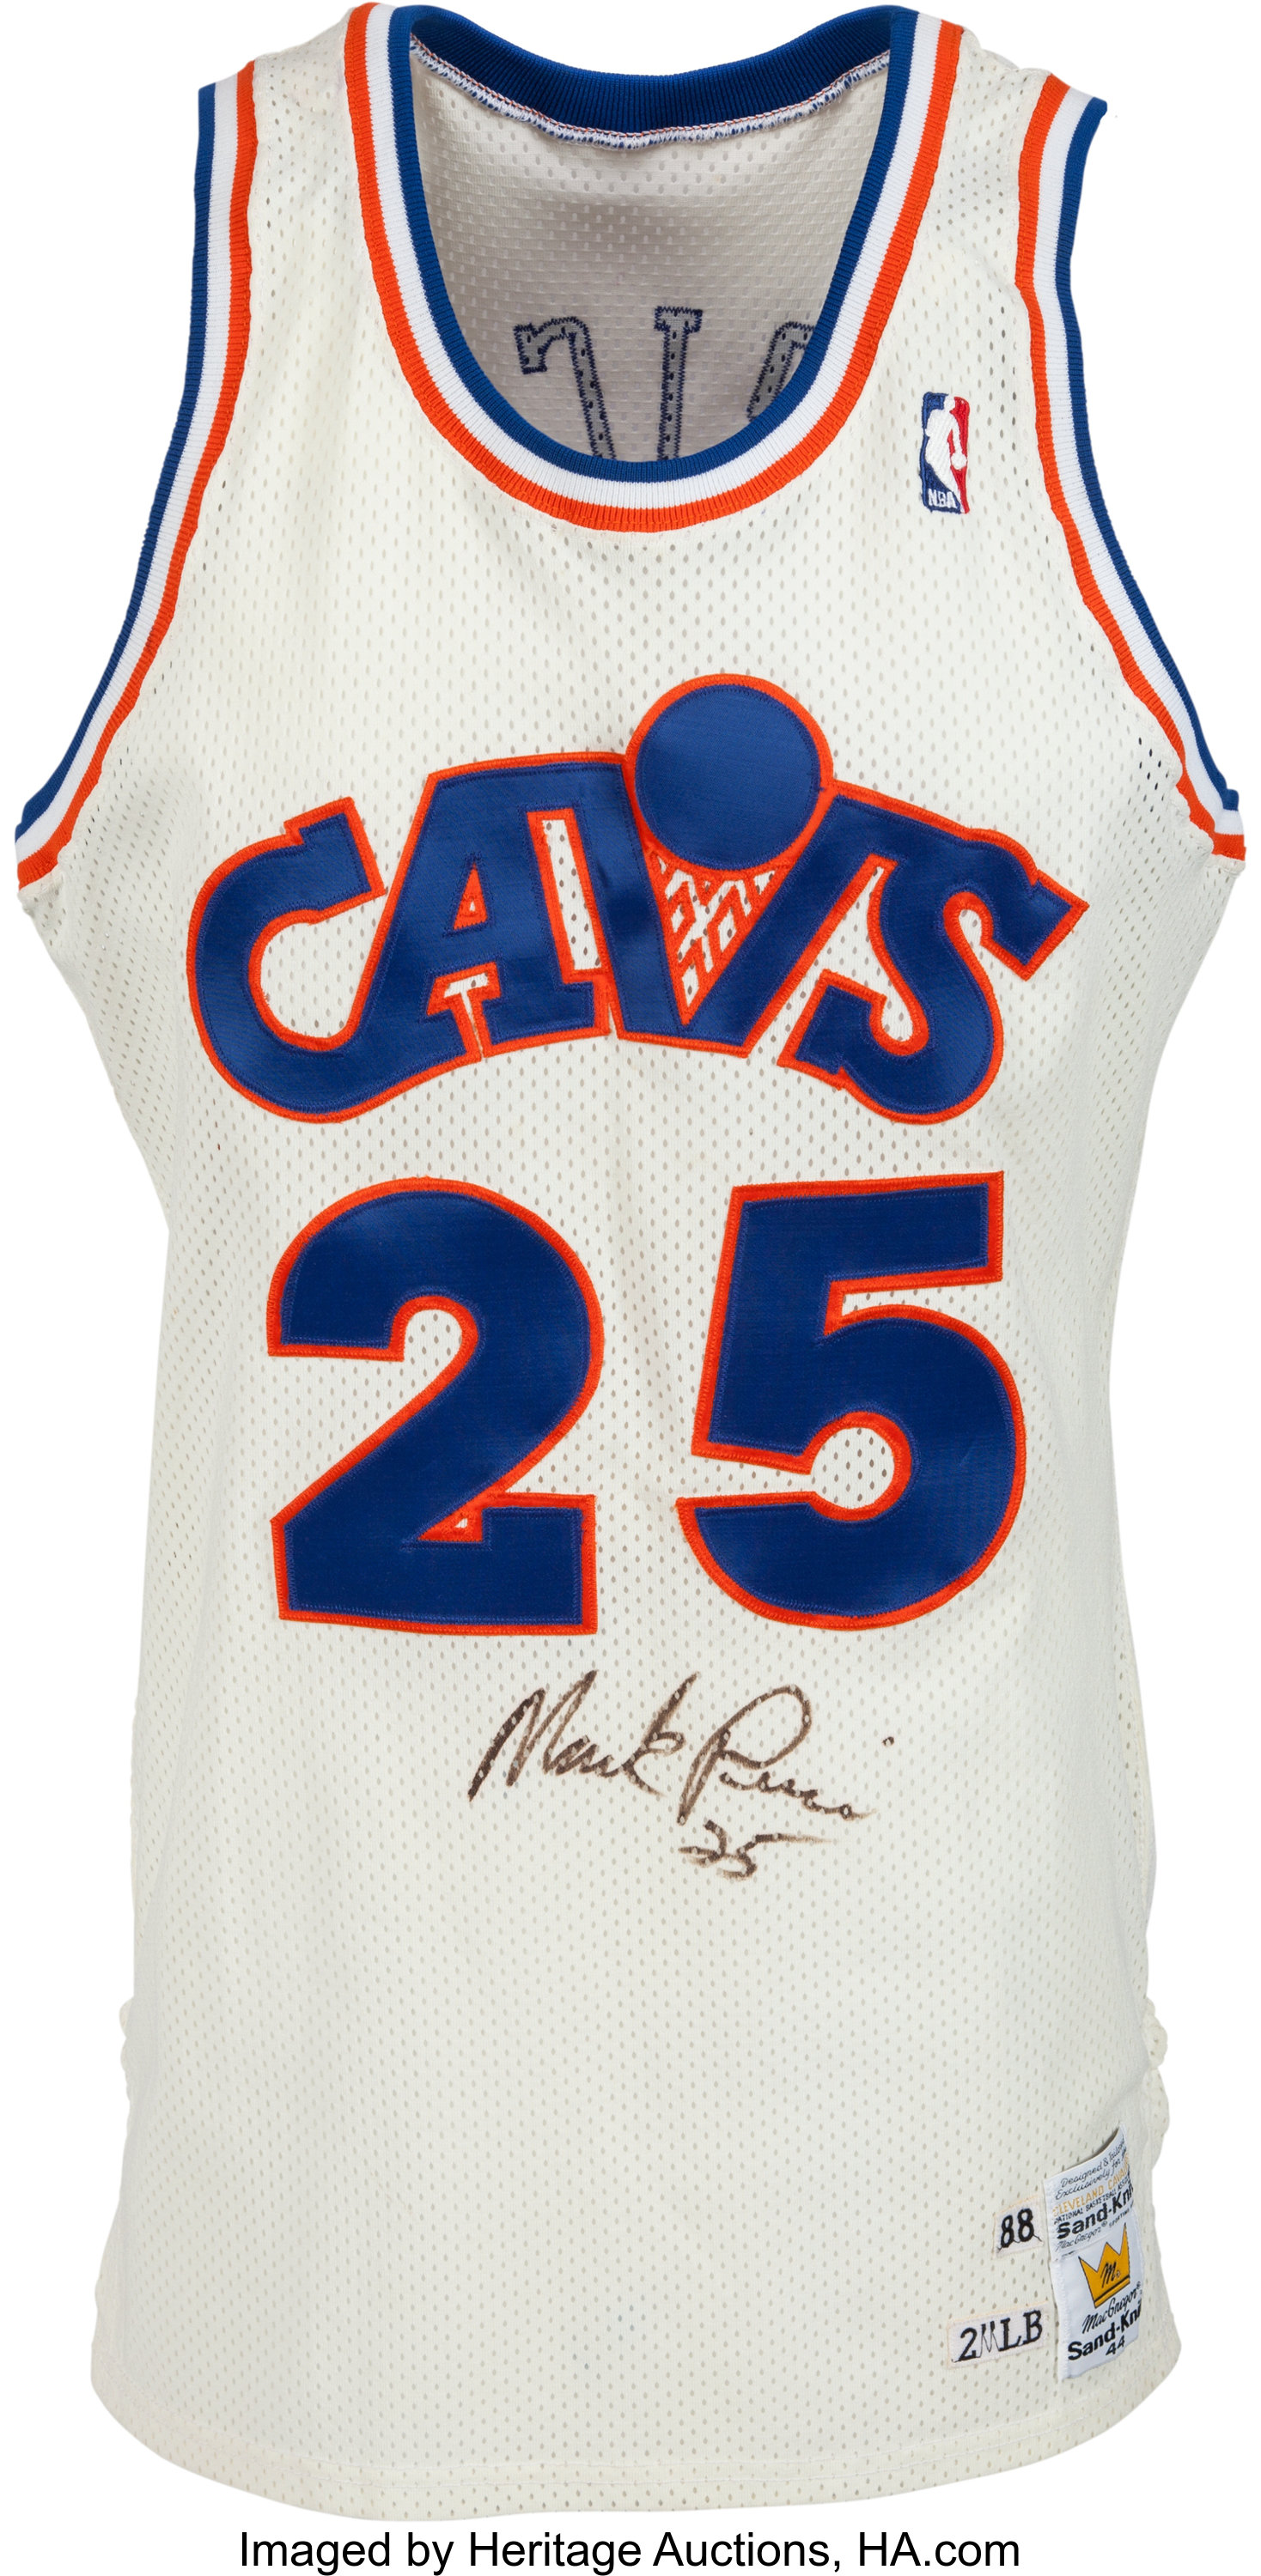 1988-89 Mark Price Game Worn Cleveland Cavaliers Jersey. ... | Lot ...